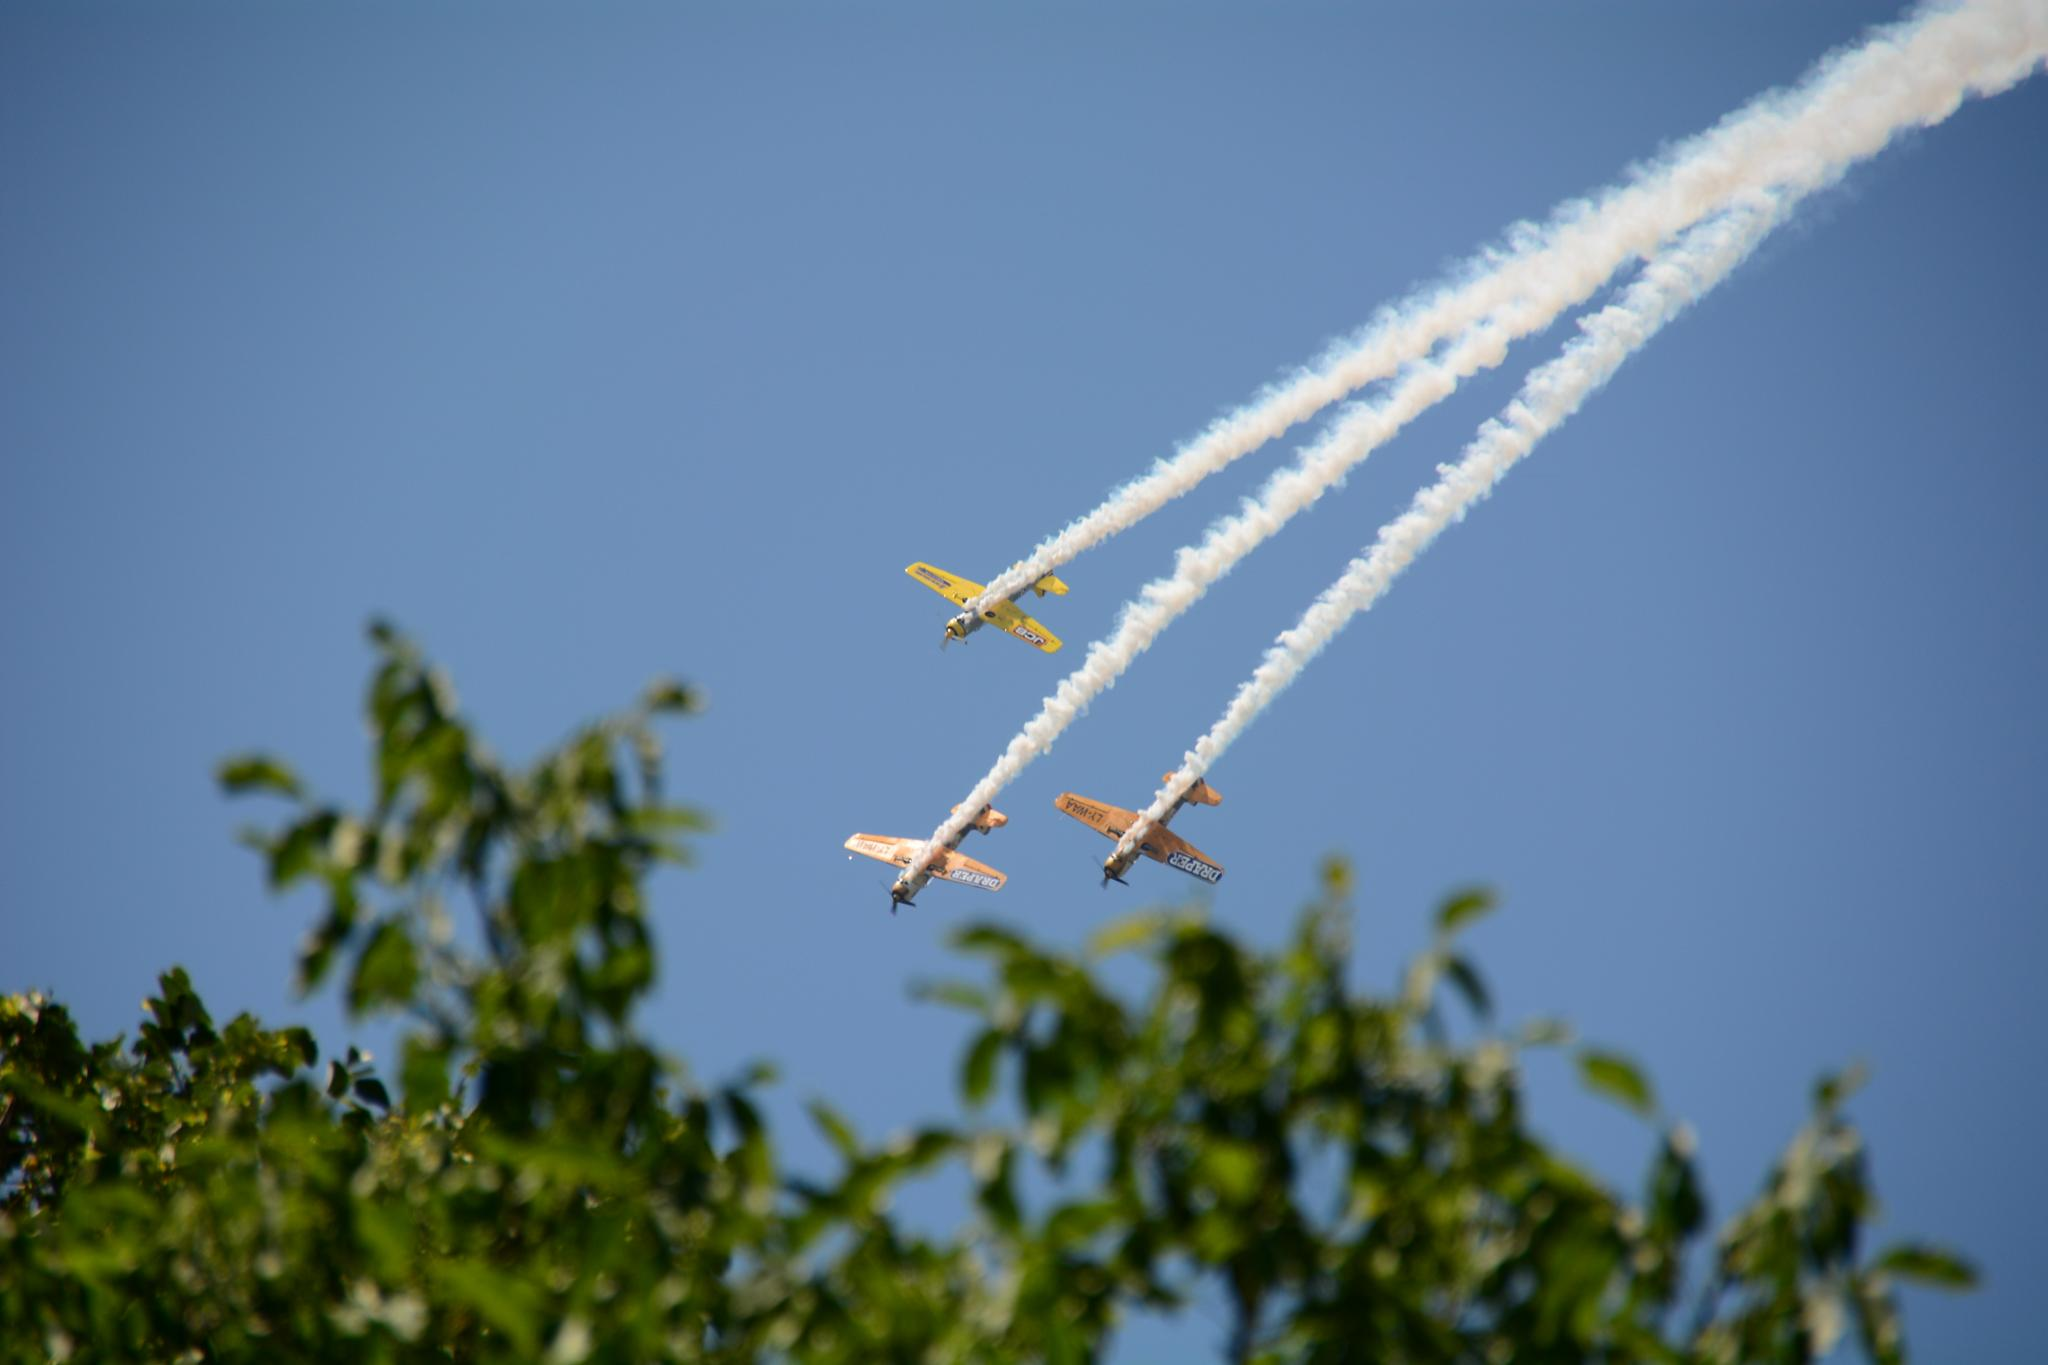 Three airplanes in formation by Silviu Calistru